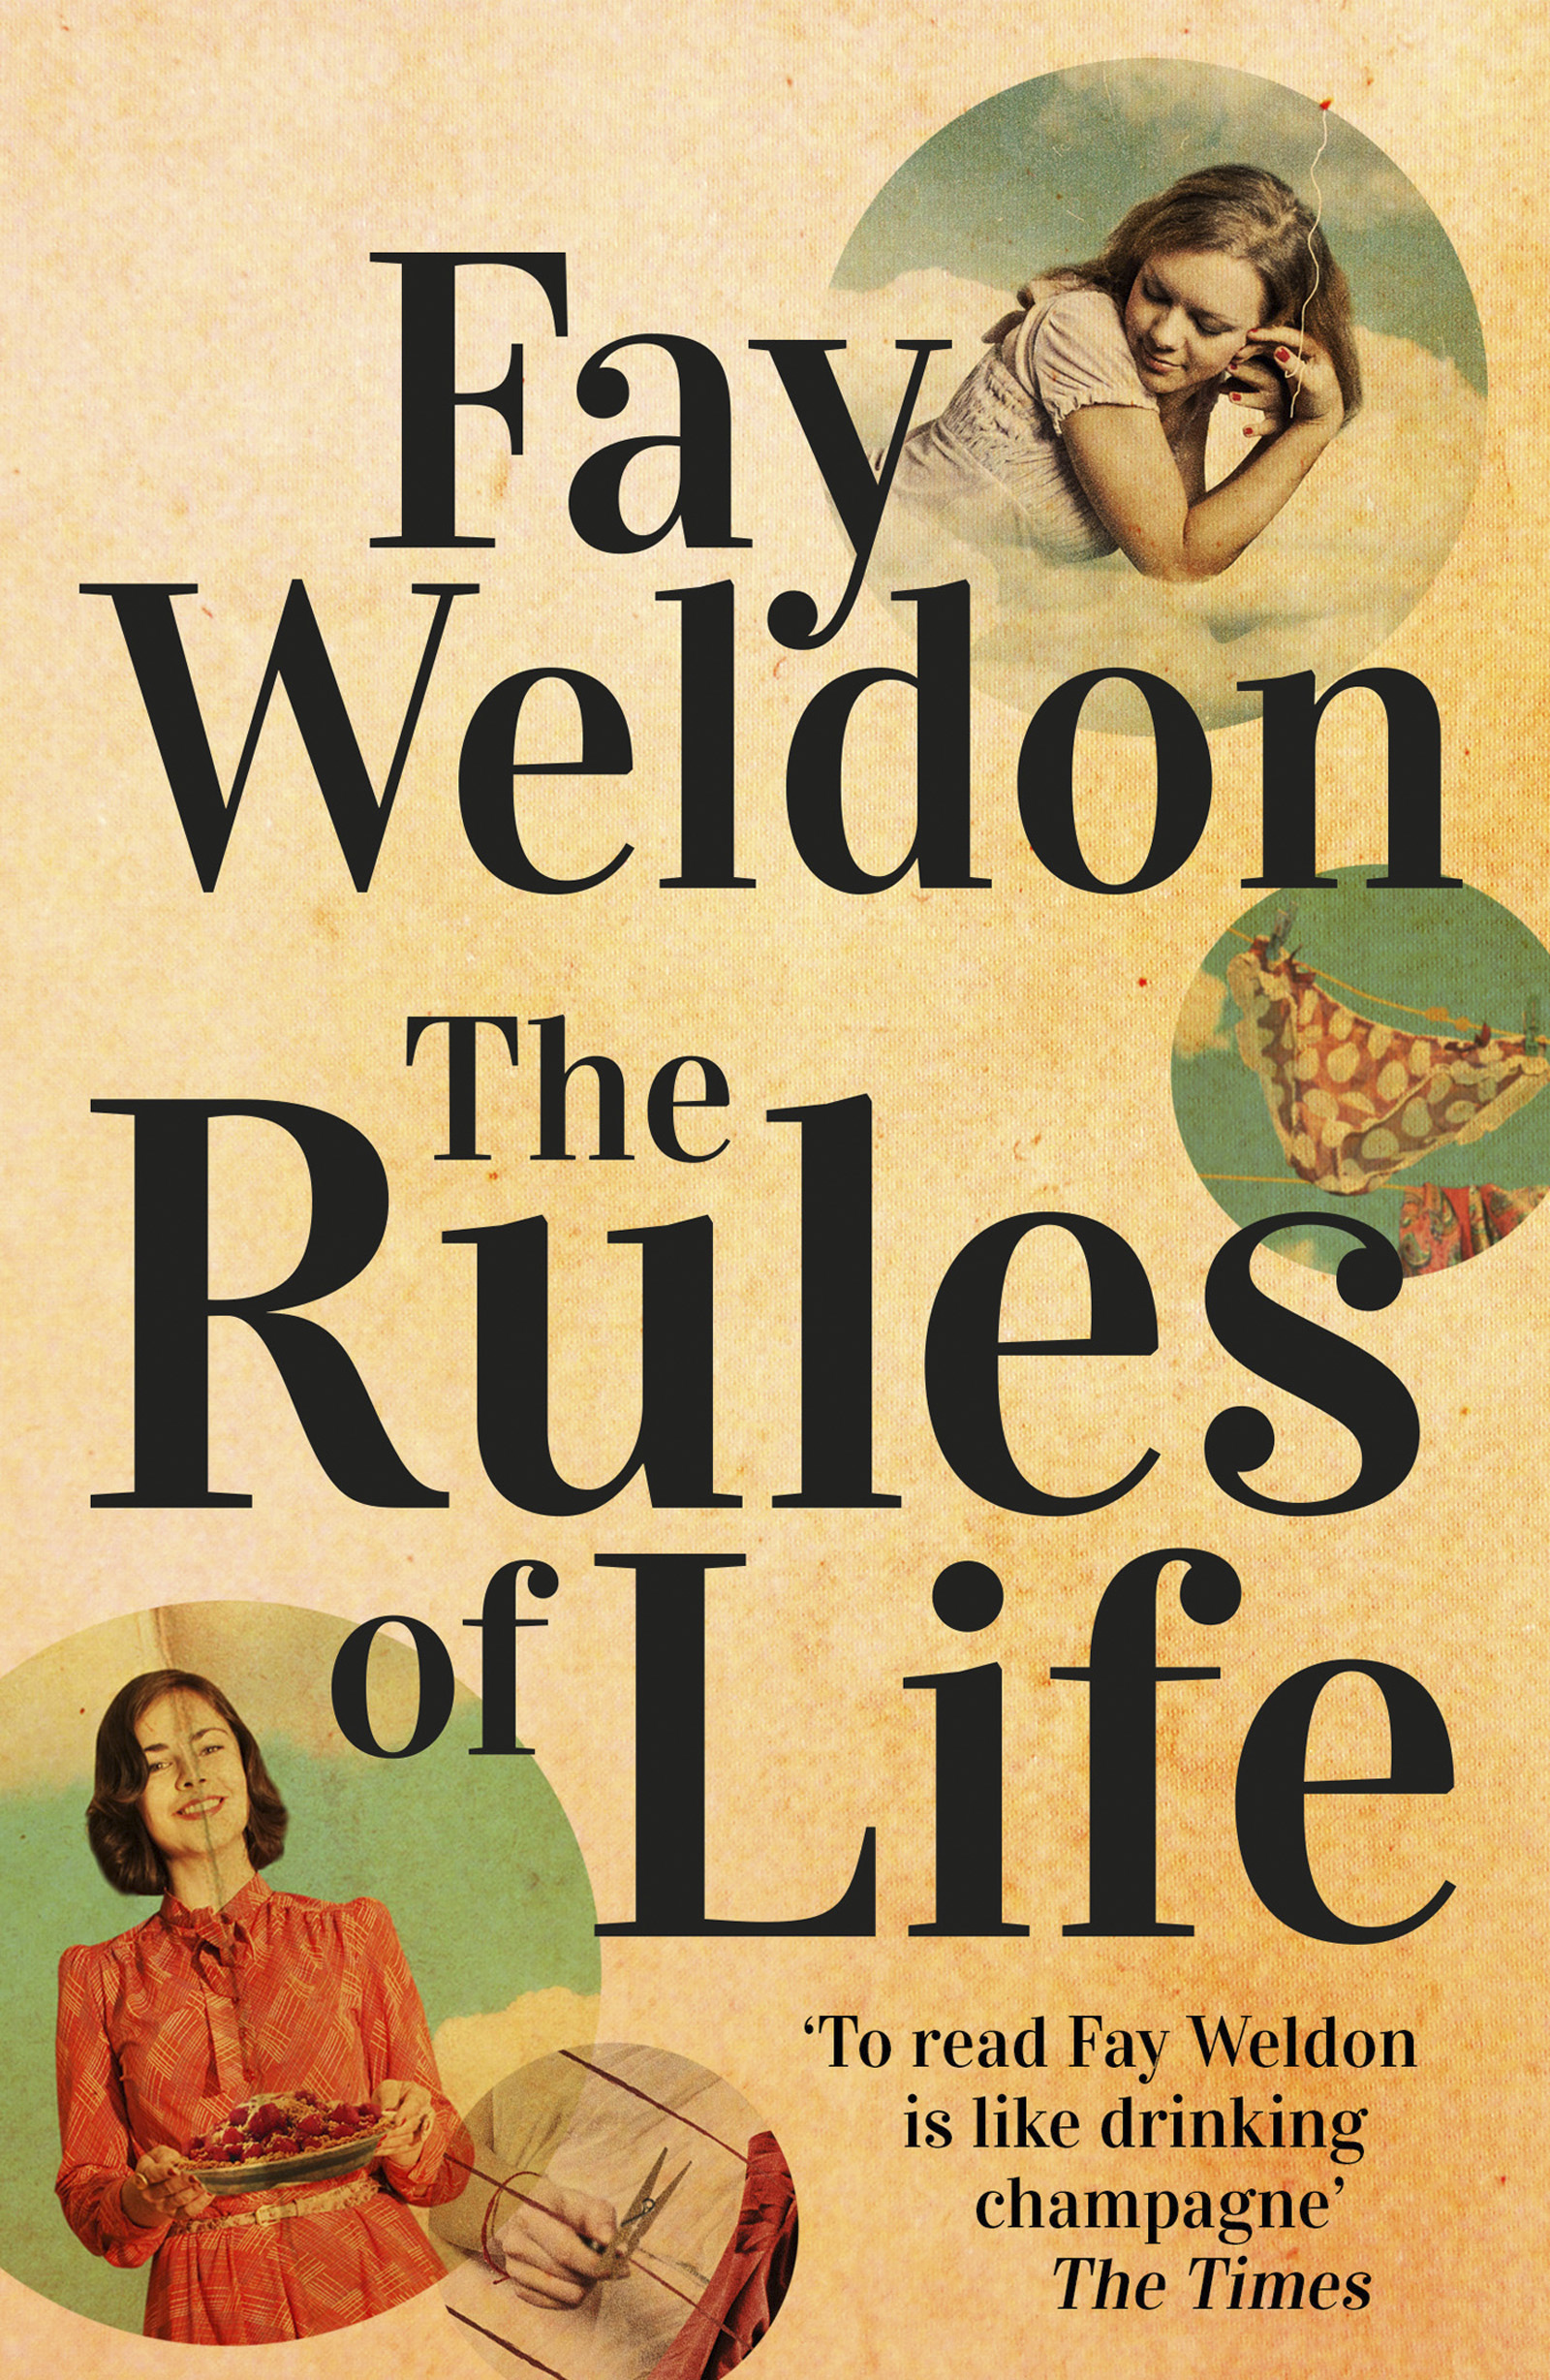 summary of weekend by fay weldon Fay weldon: 'women would find life easier if they picked up men's socks and cleaned the loo' by beth hale for the daily mail updated: 20:18 edt, 26 august 2009.